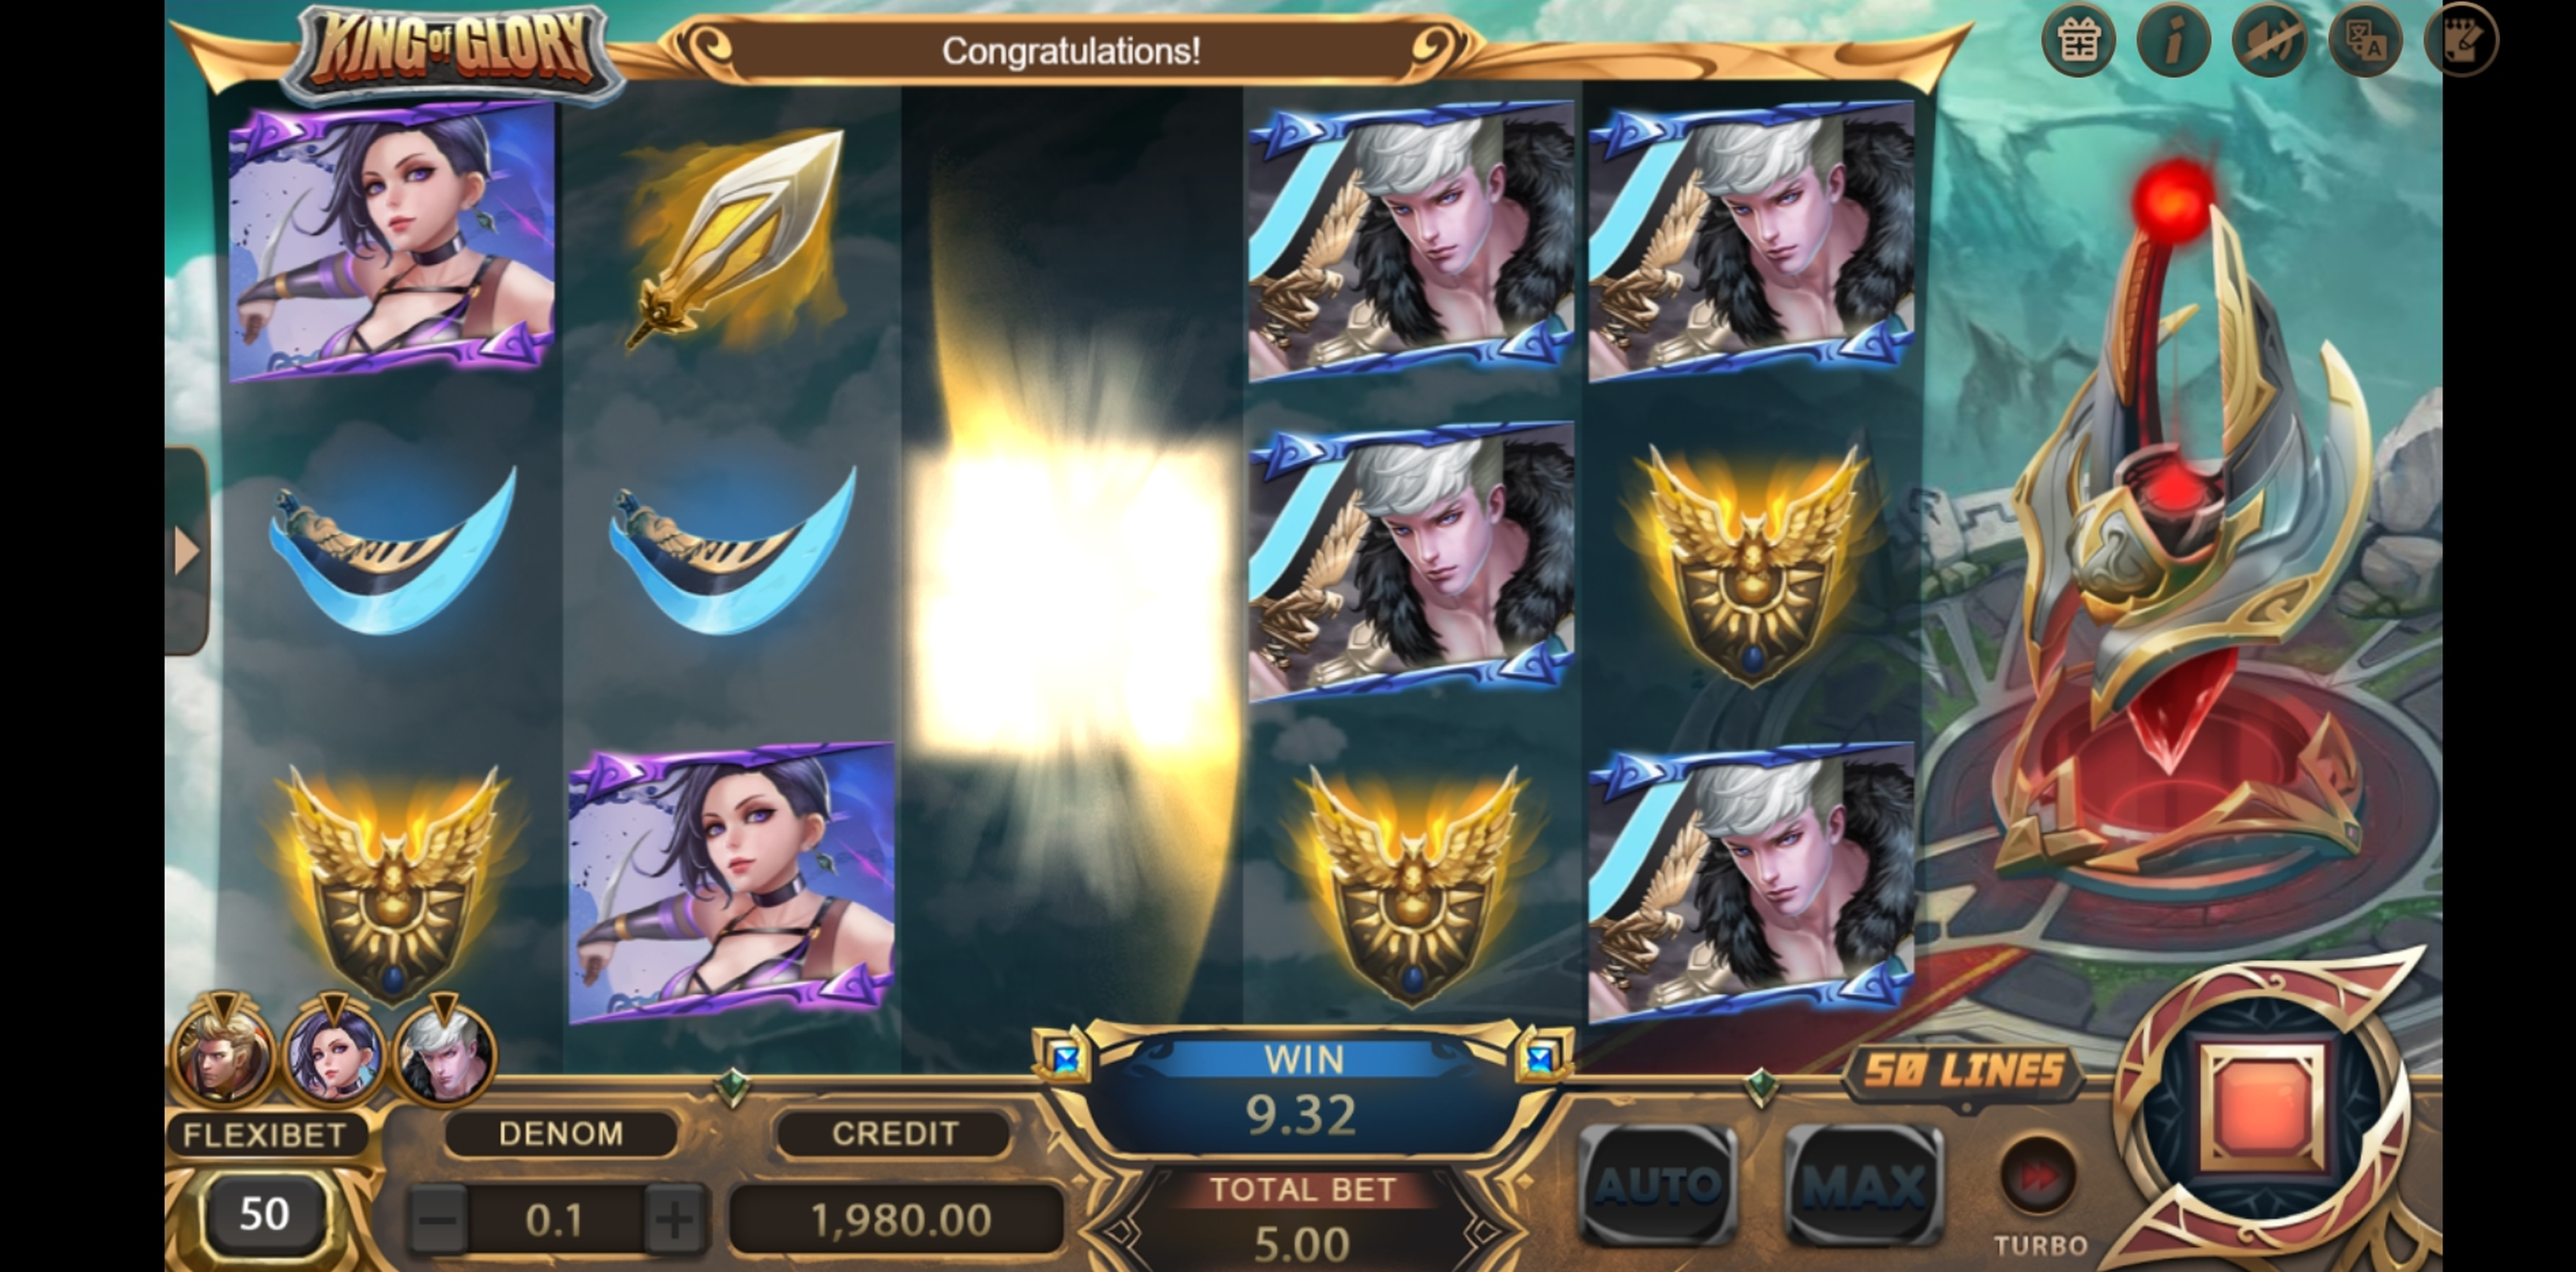 Win Money in King of Glory Free Slot Game by XIN Gaming